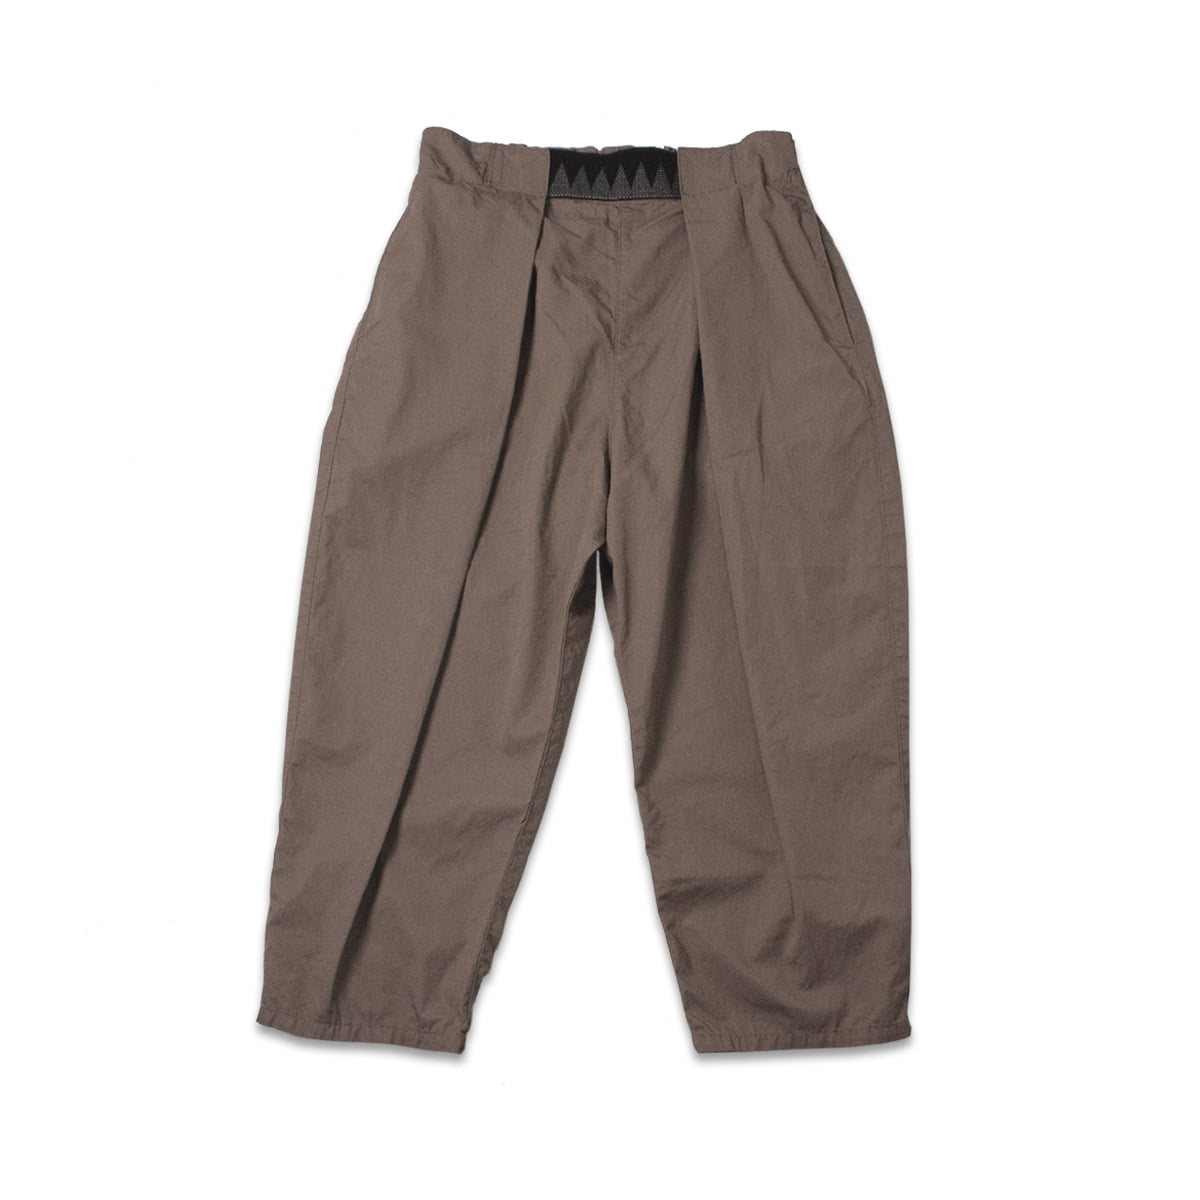 [KAPITAL] GABERGINE COTTON EASY BEACH GO PANTS 'BEIGE'